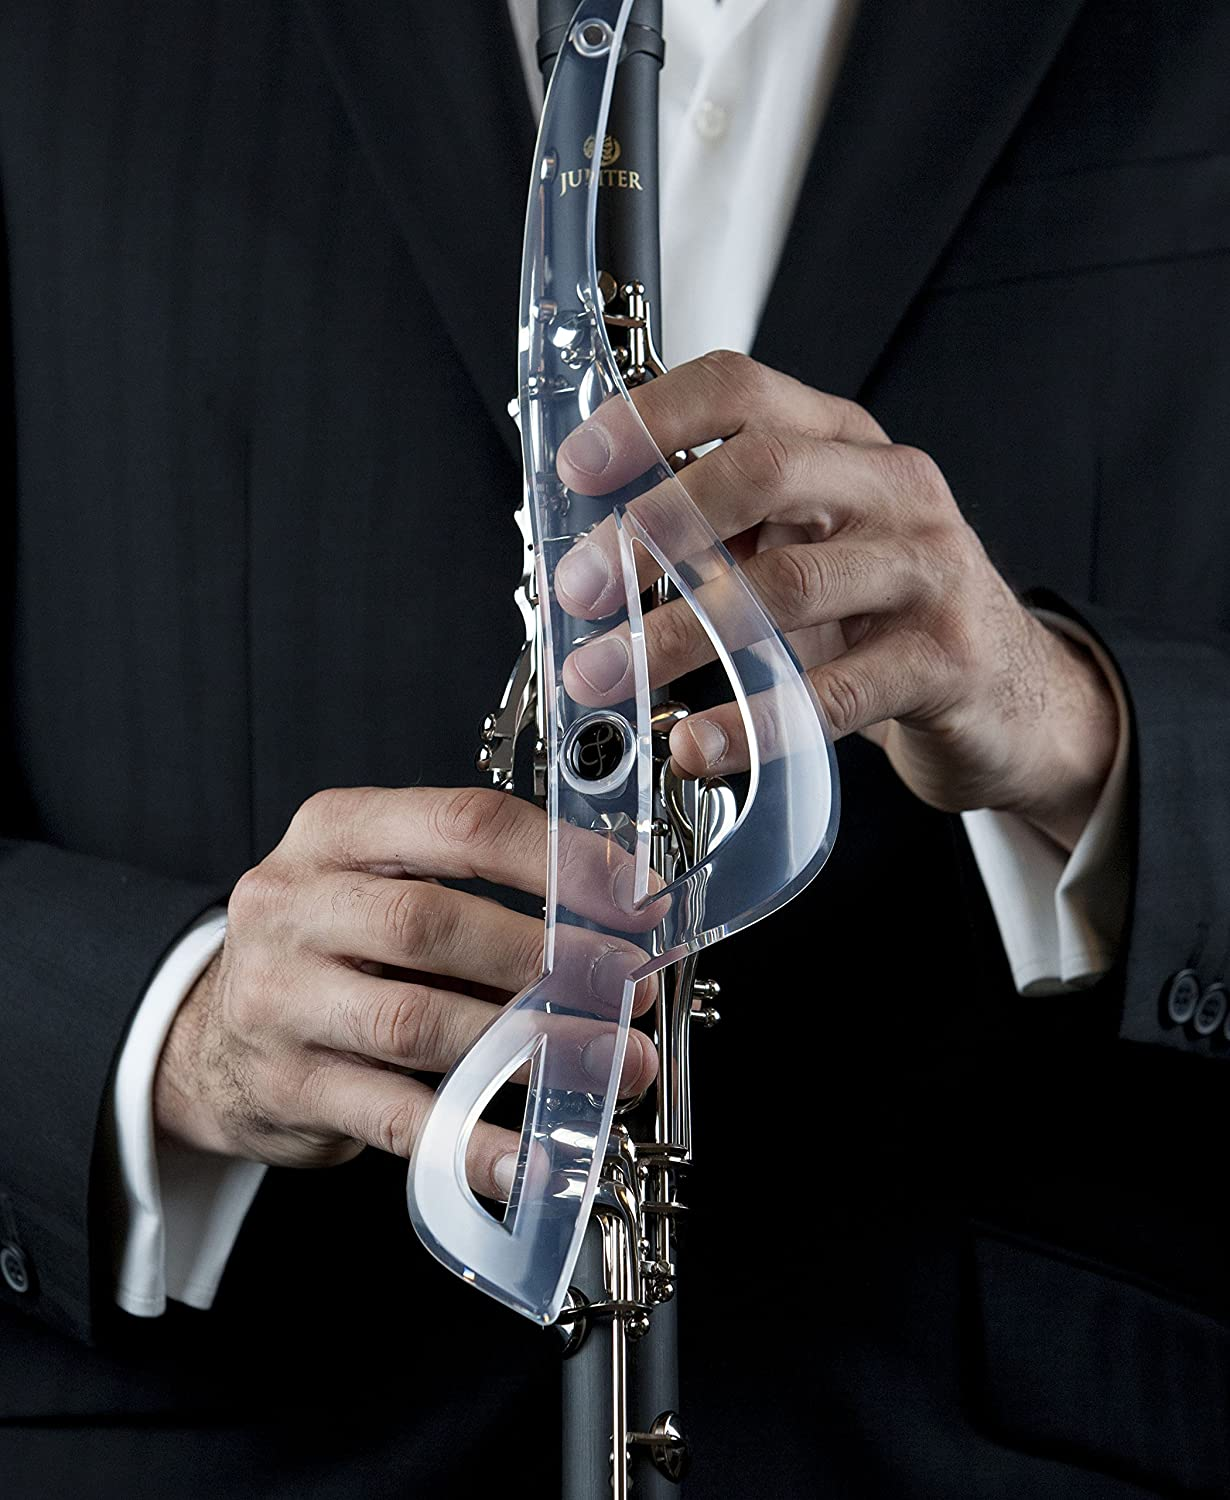 Amazon.com: Clarinet Learning Tool